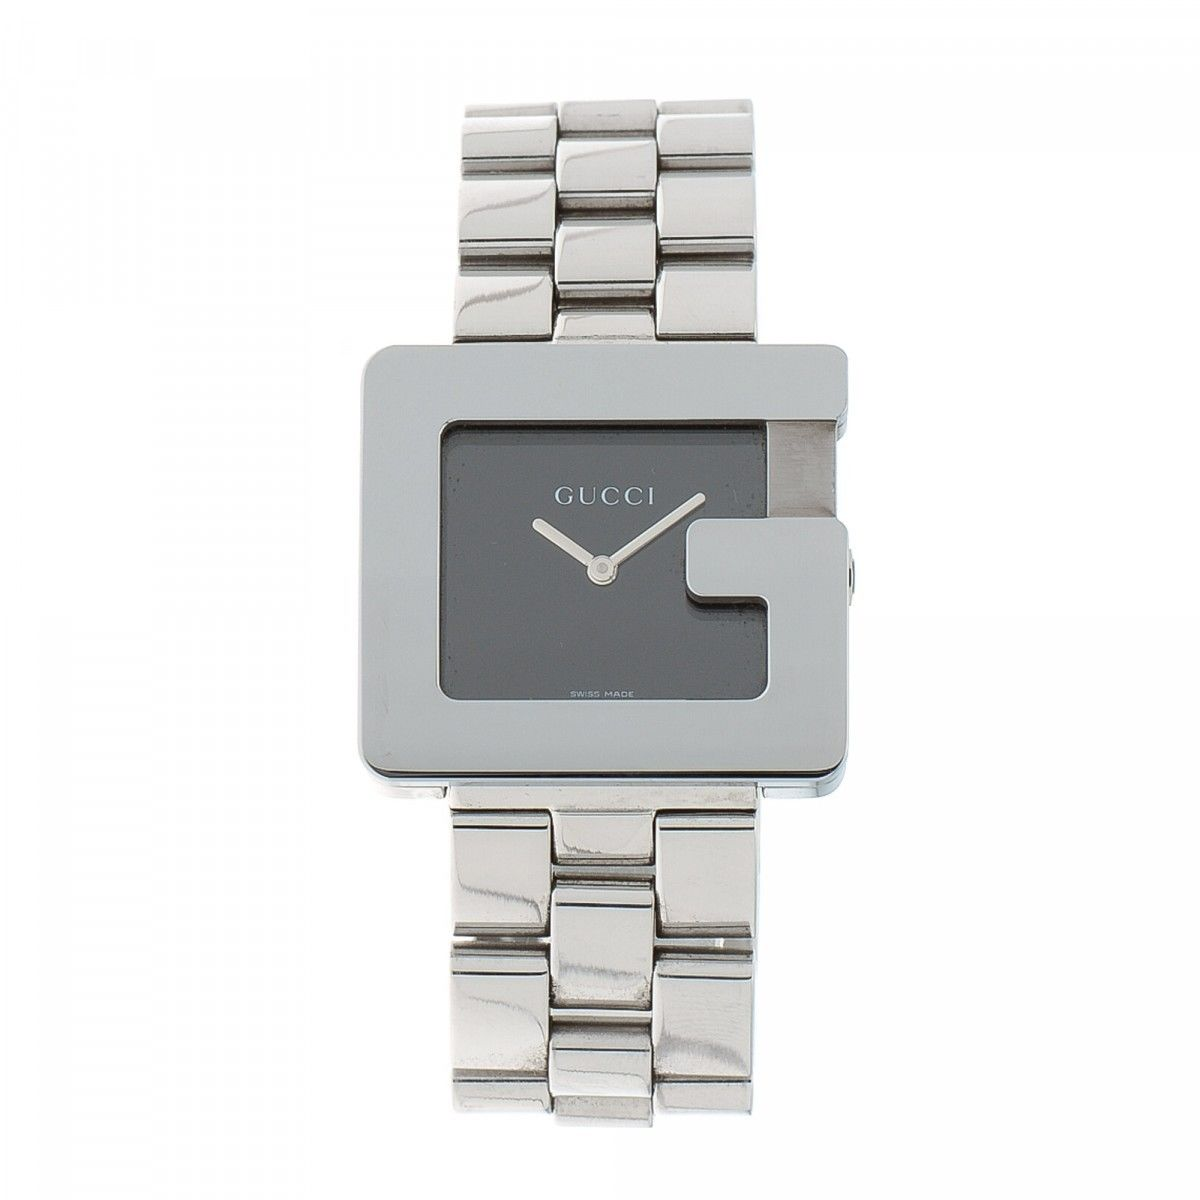 adfe8e85dd4 Gucci 3600M Timepiece 31mm Stainless Steel - LXRandCo - Pre-Owned ...